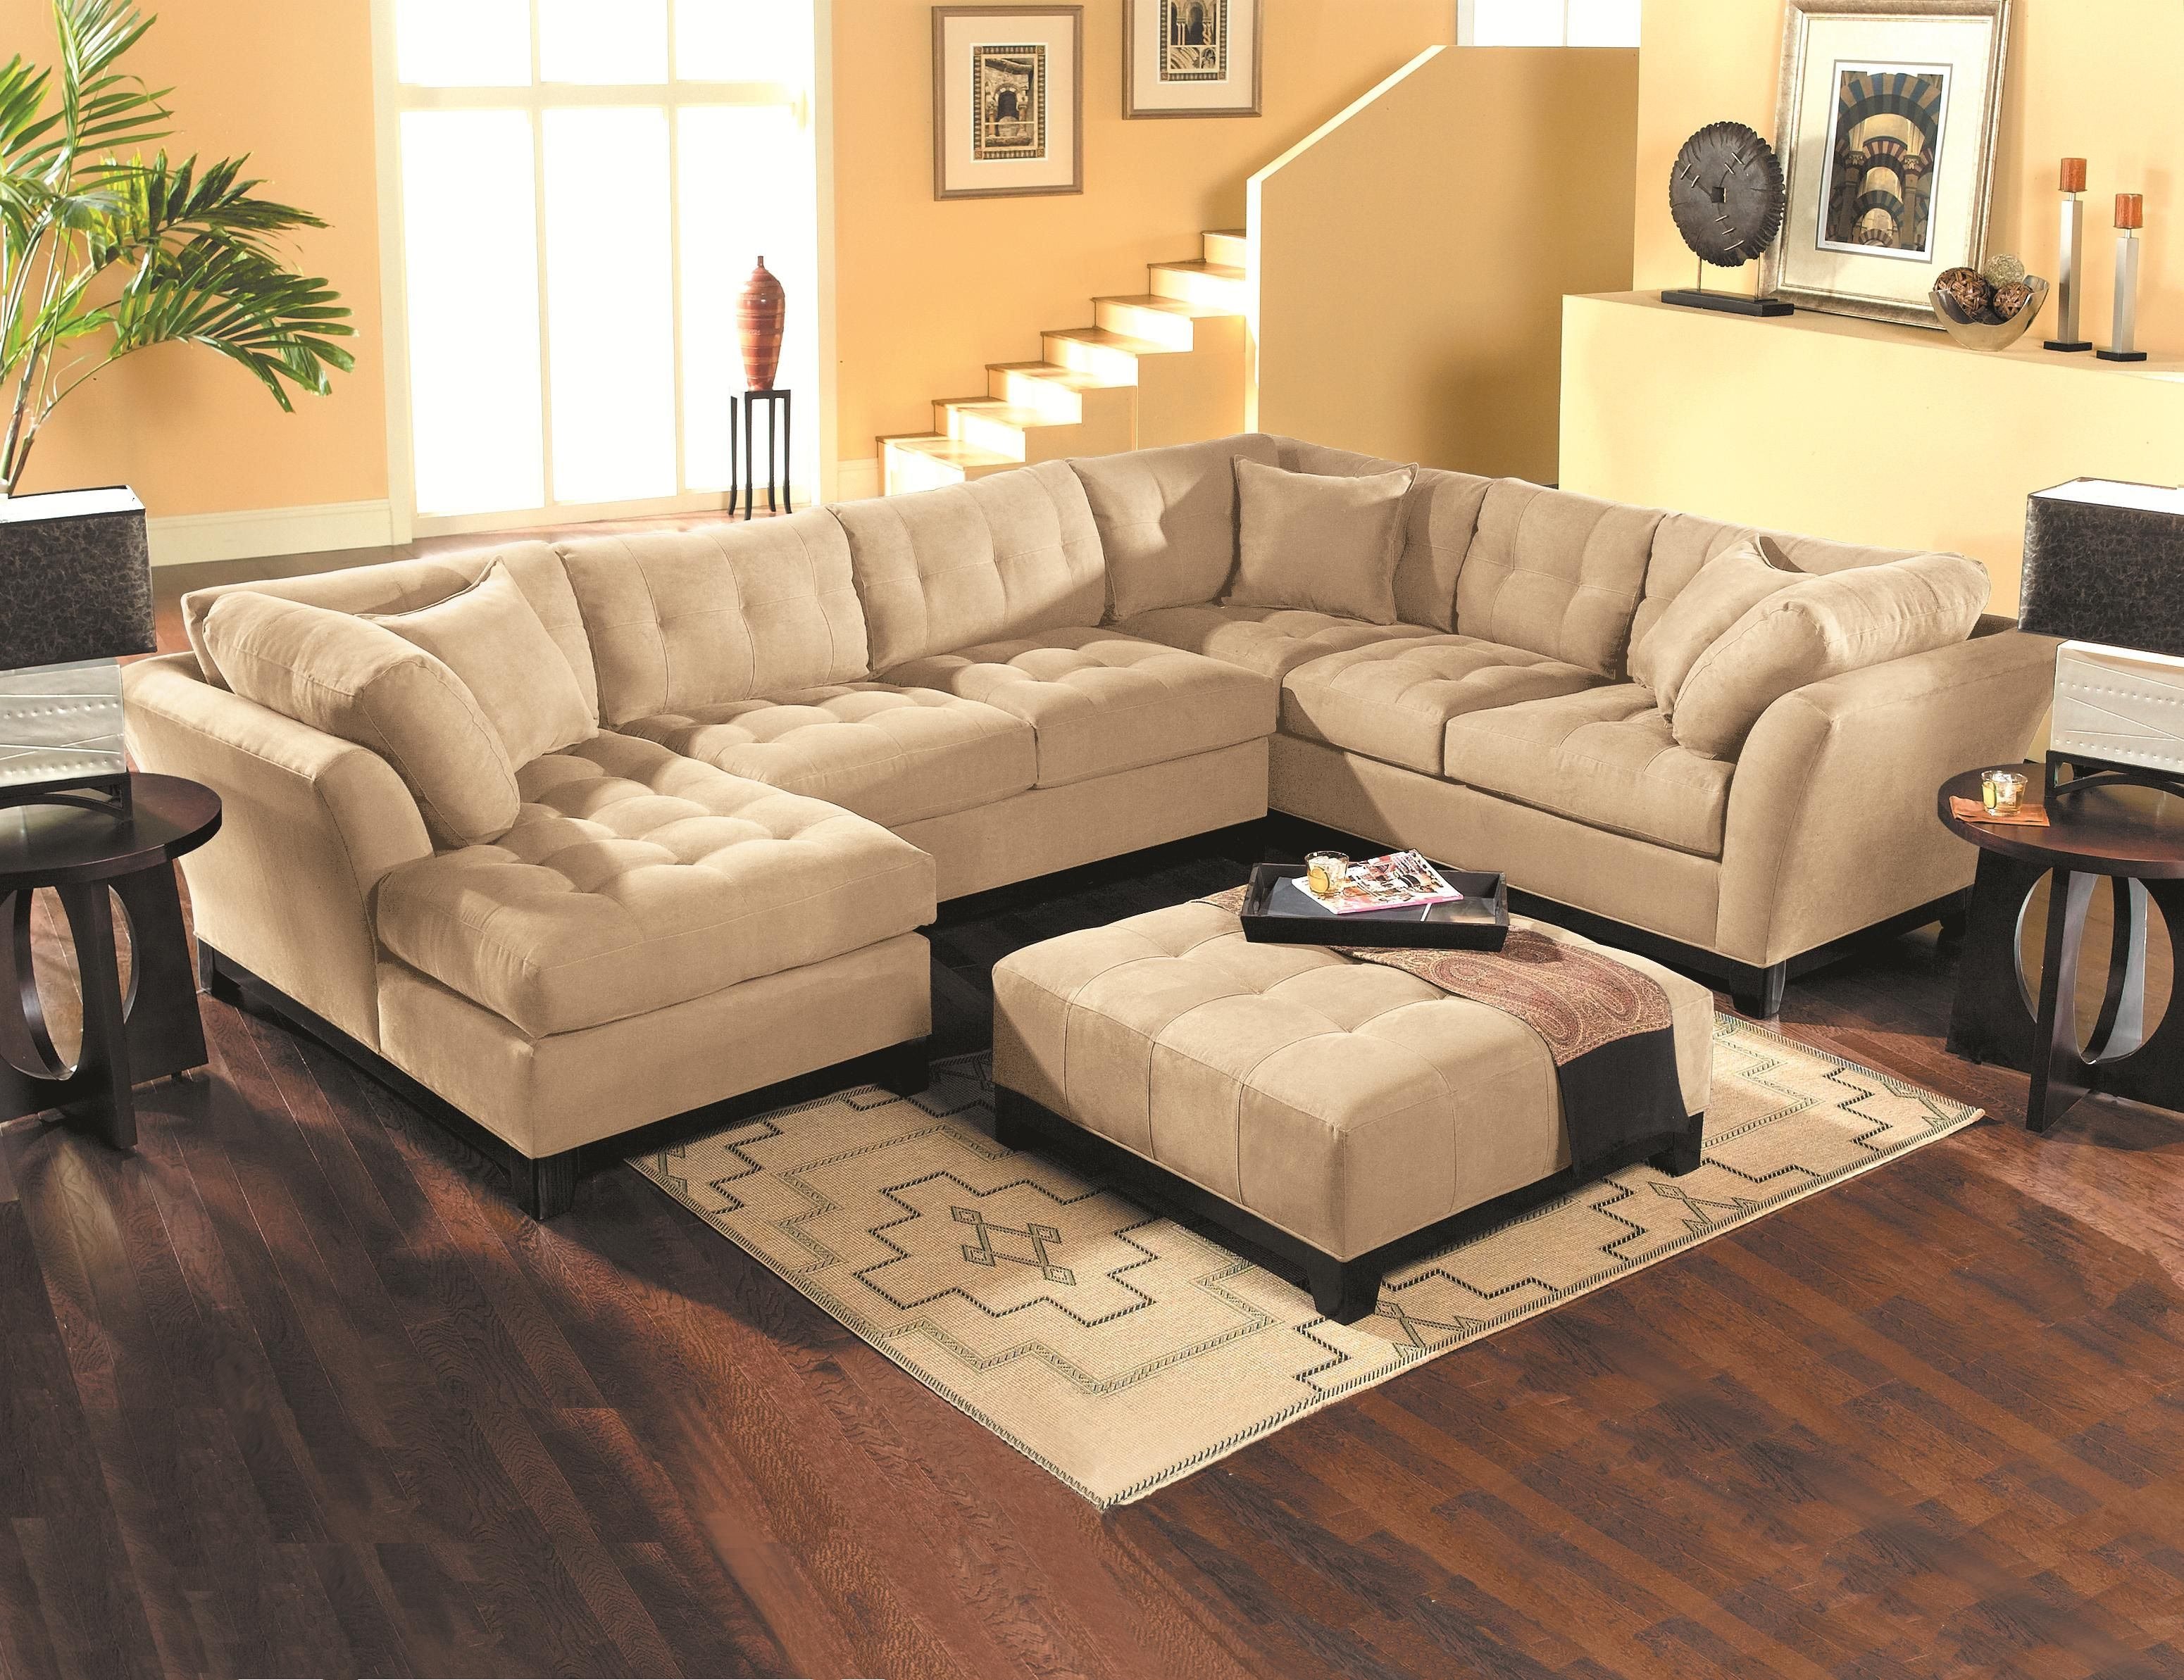 shop for a cindy crawford home metropolis hydra left 4 pc sectional living room at rooms to go find living room sets that will look great in your home and